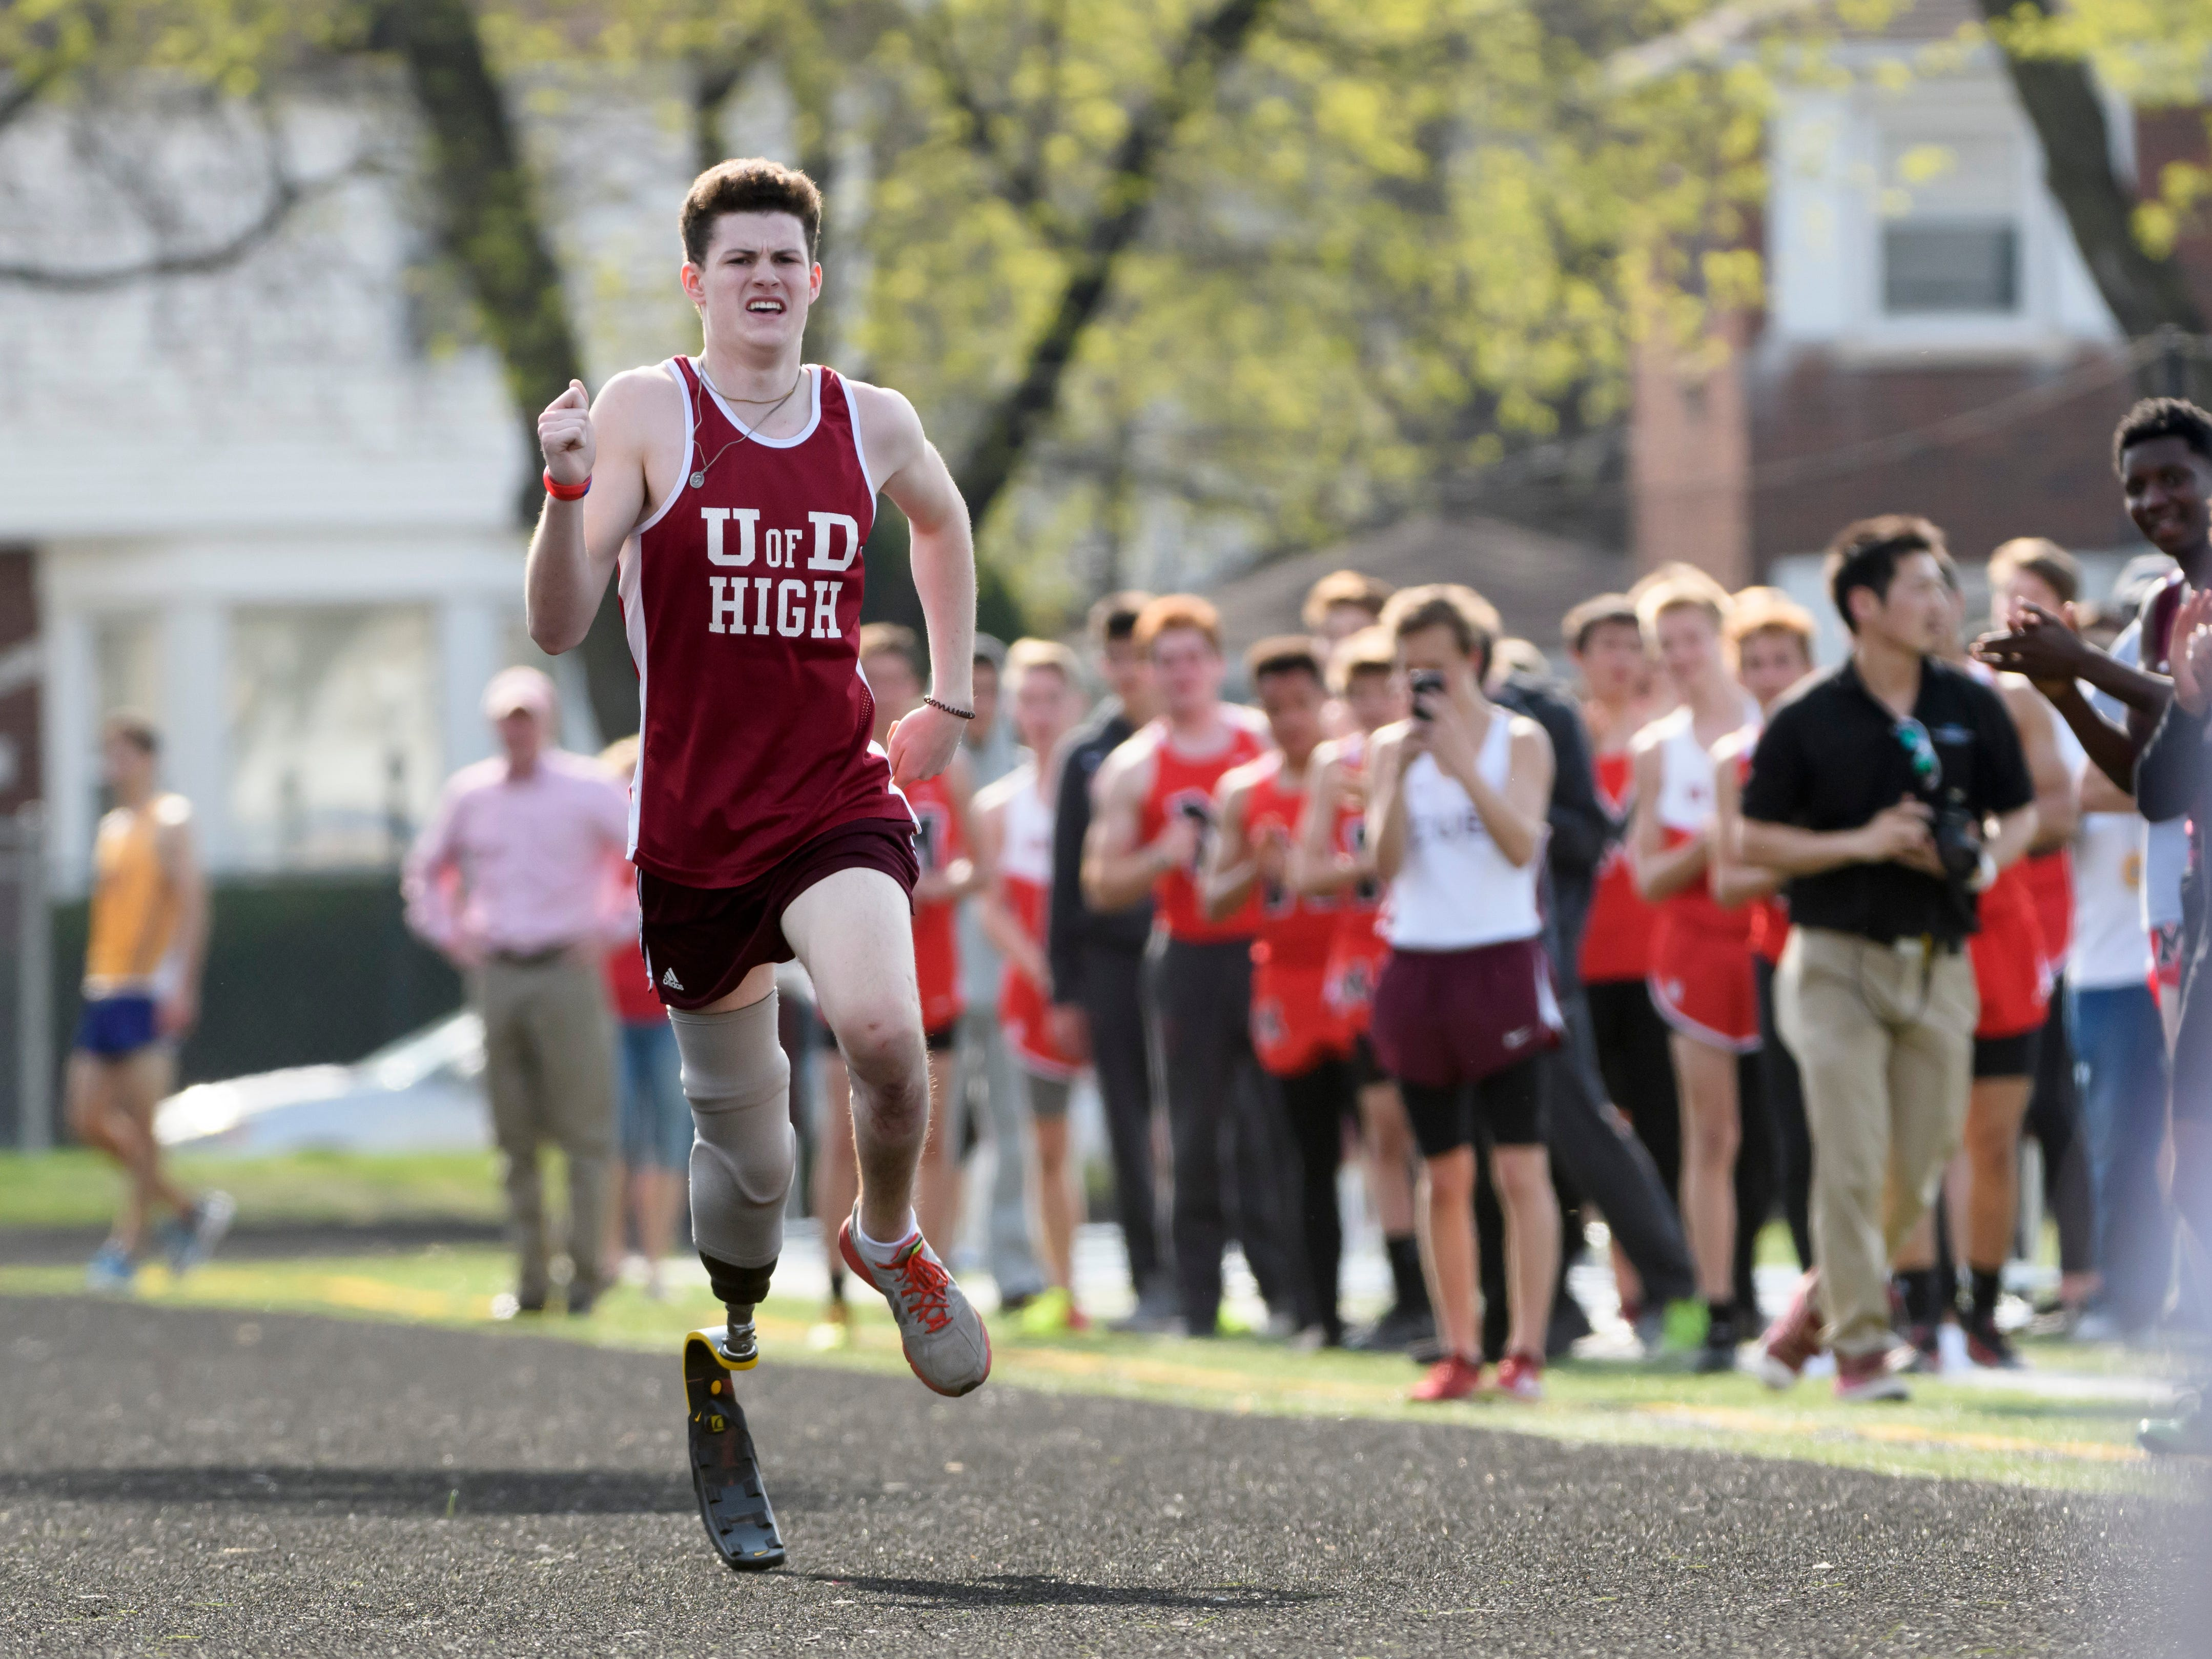 University of Detroit Jesuit High School runner Sean English makes his way down the final straightaway towards the finish line, running his final race, a 400m dash on May 2, 2018.  English lost his leg after being hit by a car while helping at the scene of a rollover accident on I-96 in 2017, but worked hard on rehabbing his shattered leg and became an inspirational hero to his teammates, classmates and the community for his perseverance.